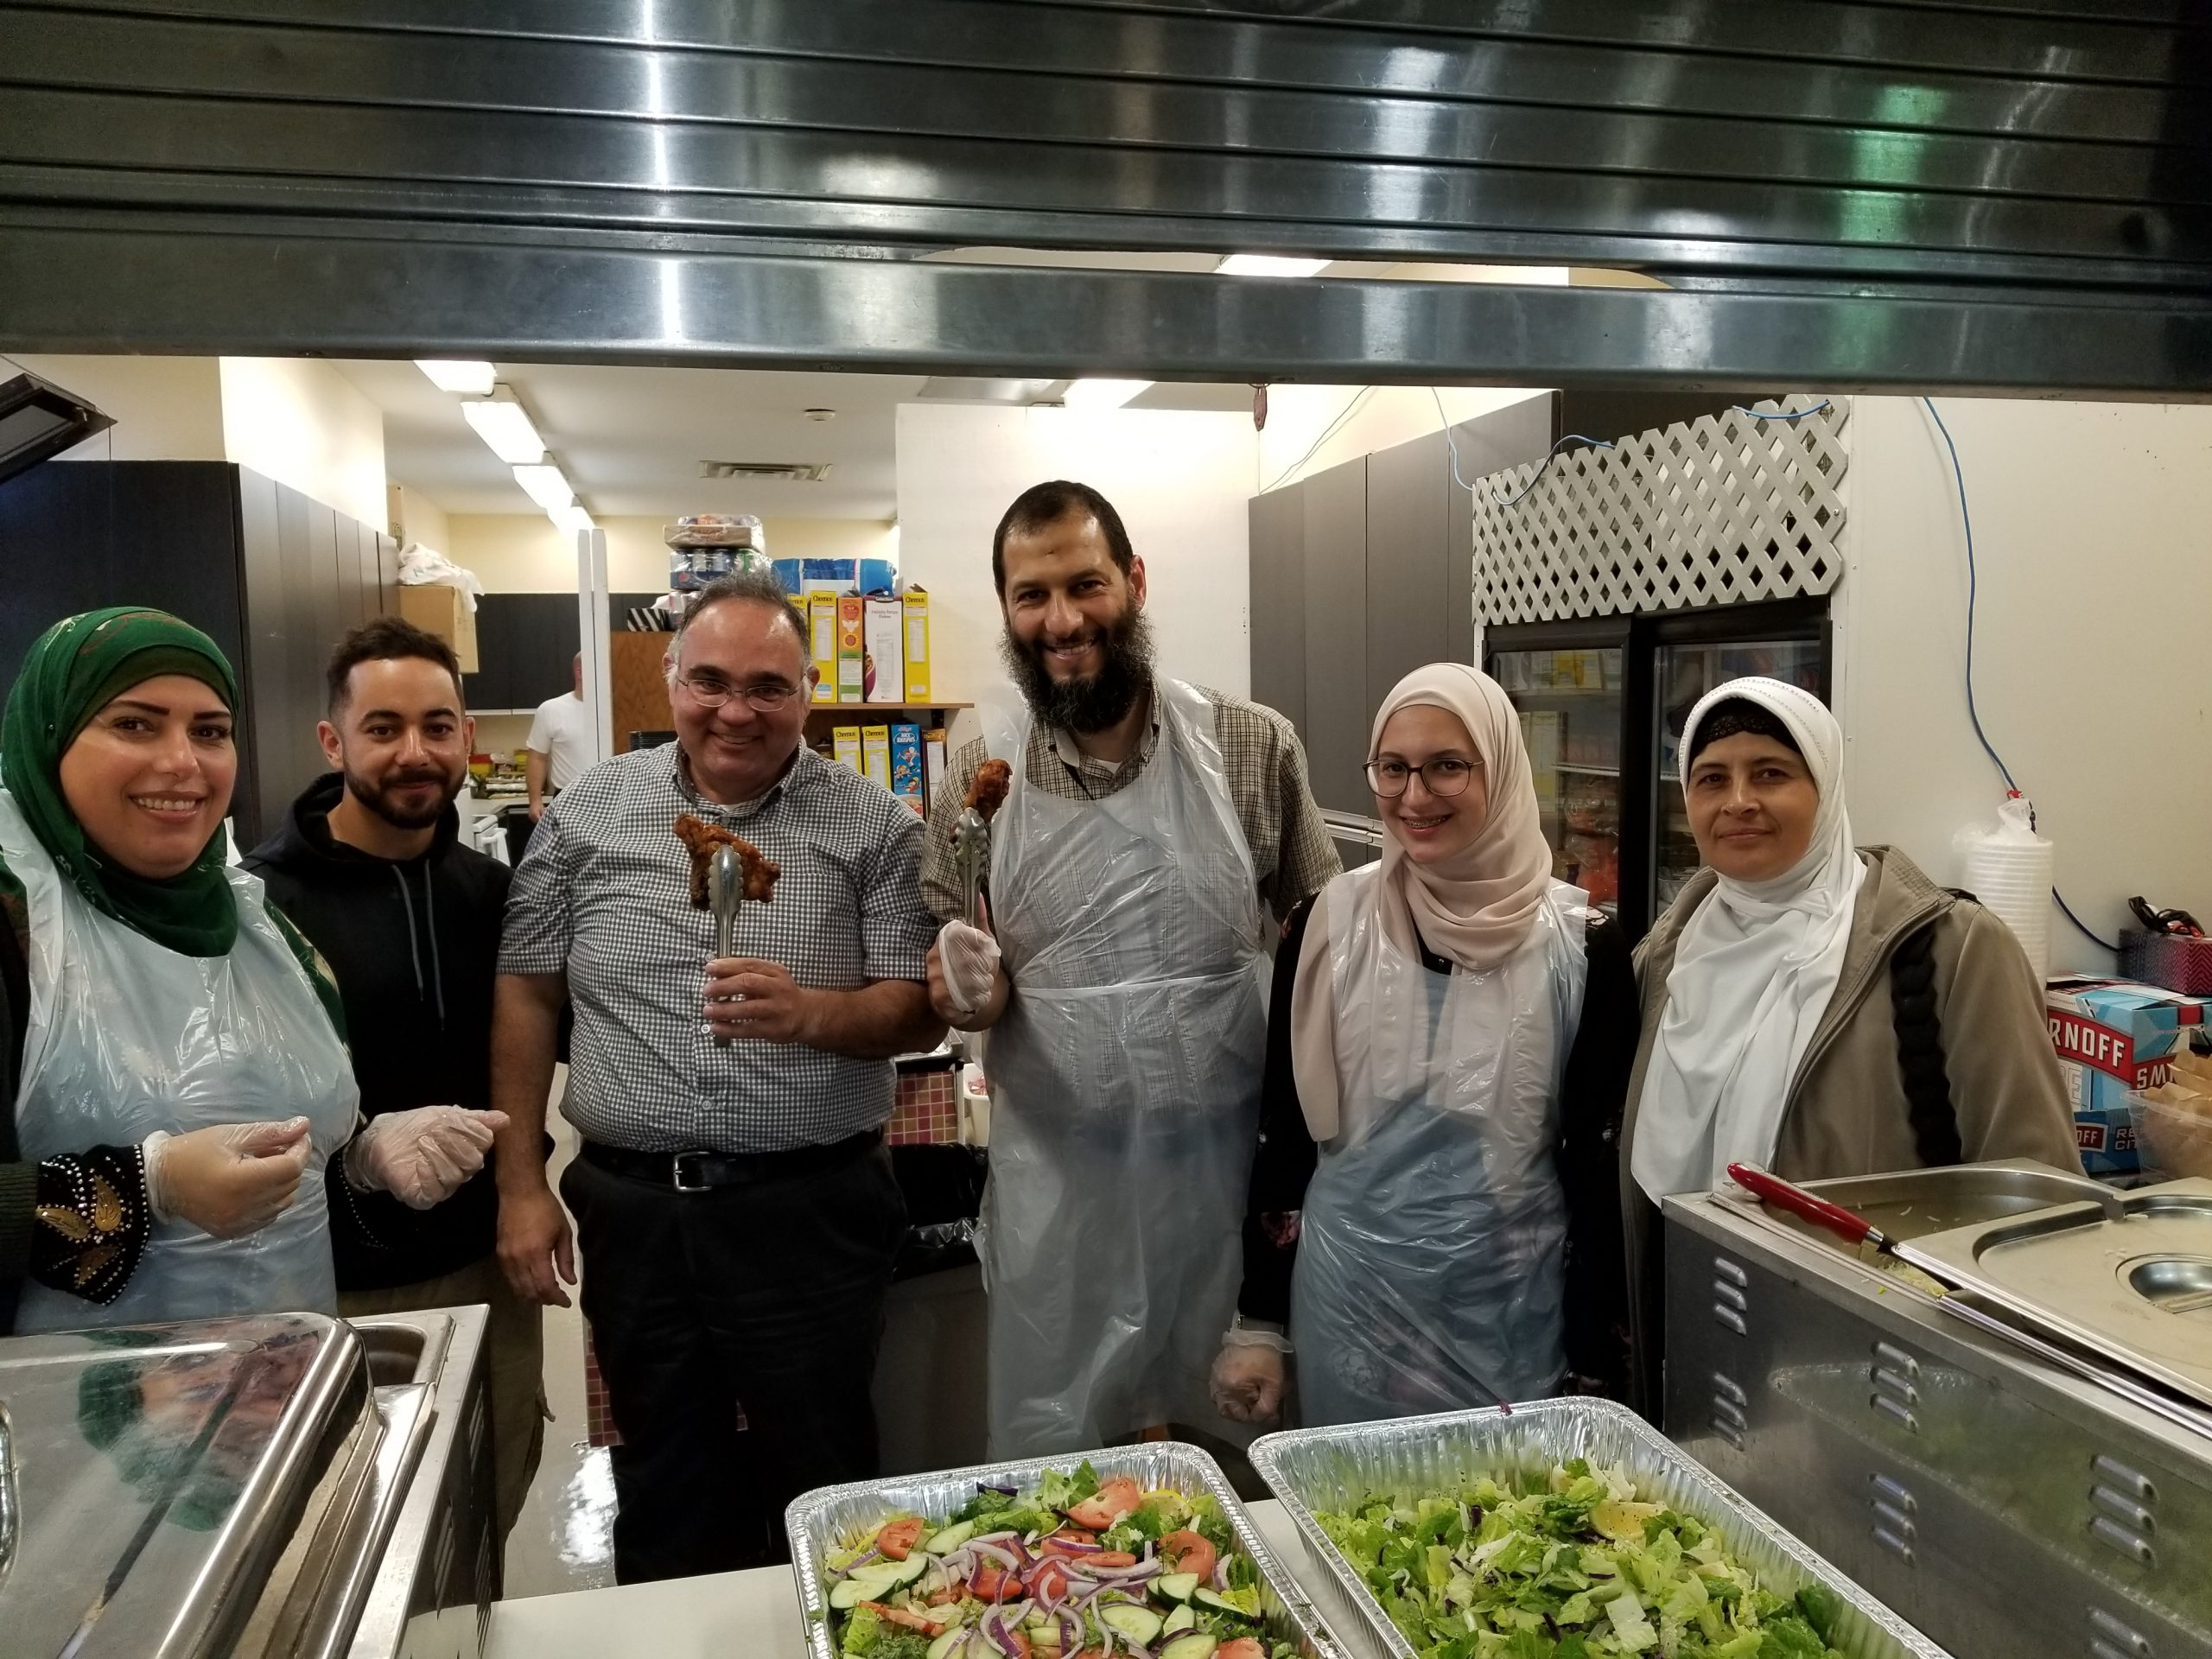 Six people standing in a kitchen, ready to serve food.